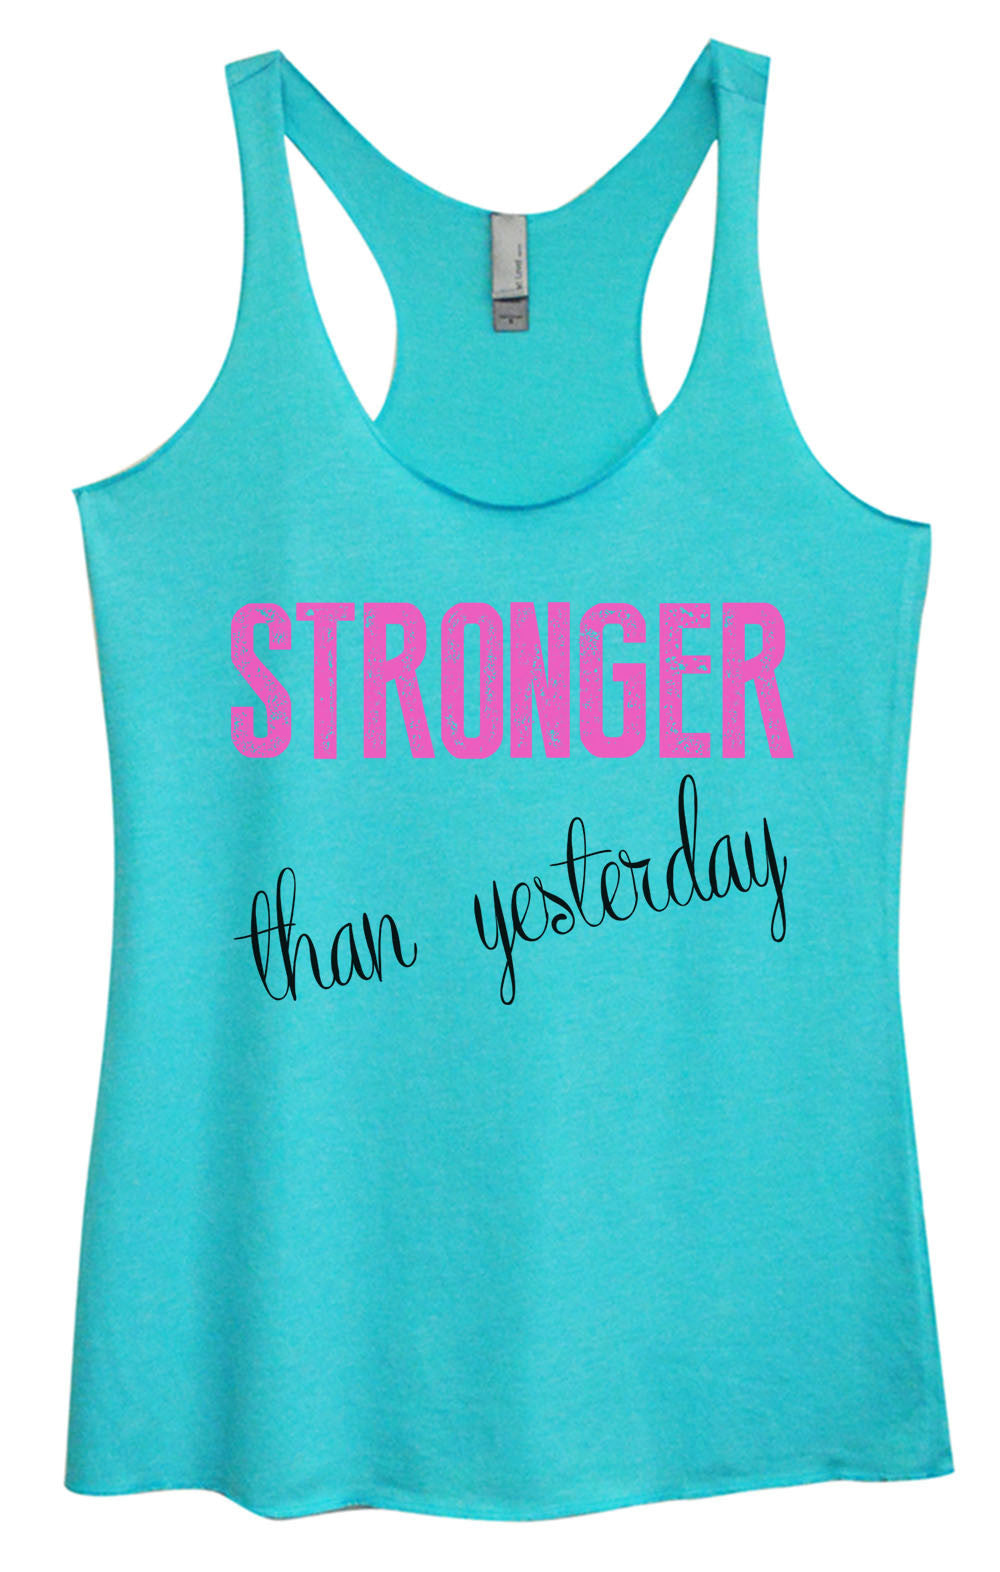 Womens Fashion Triblend Tank Top - Stronger Than Yesterday - Tri-768 - Funny Shirts Tank Tops Burnouts and Triblends  - 1